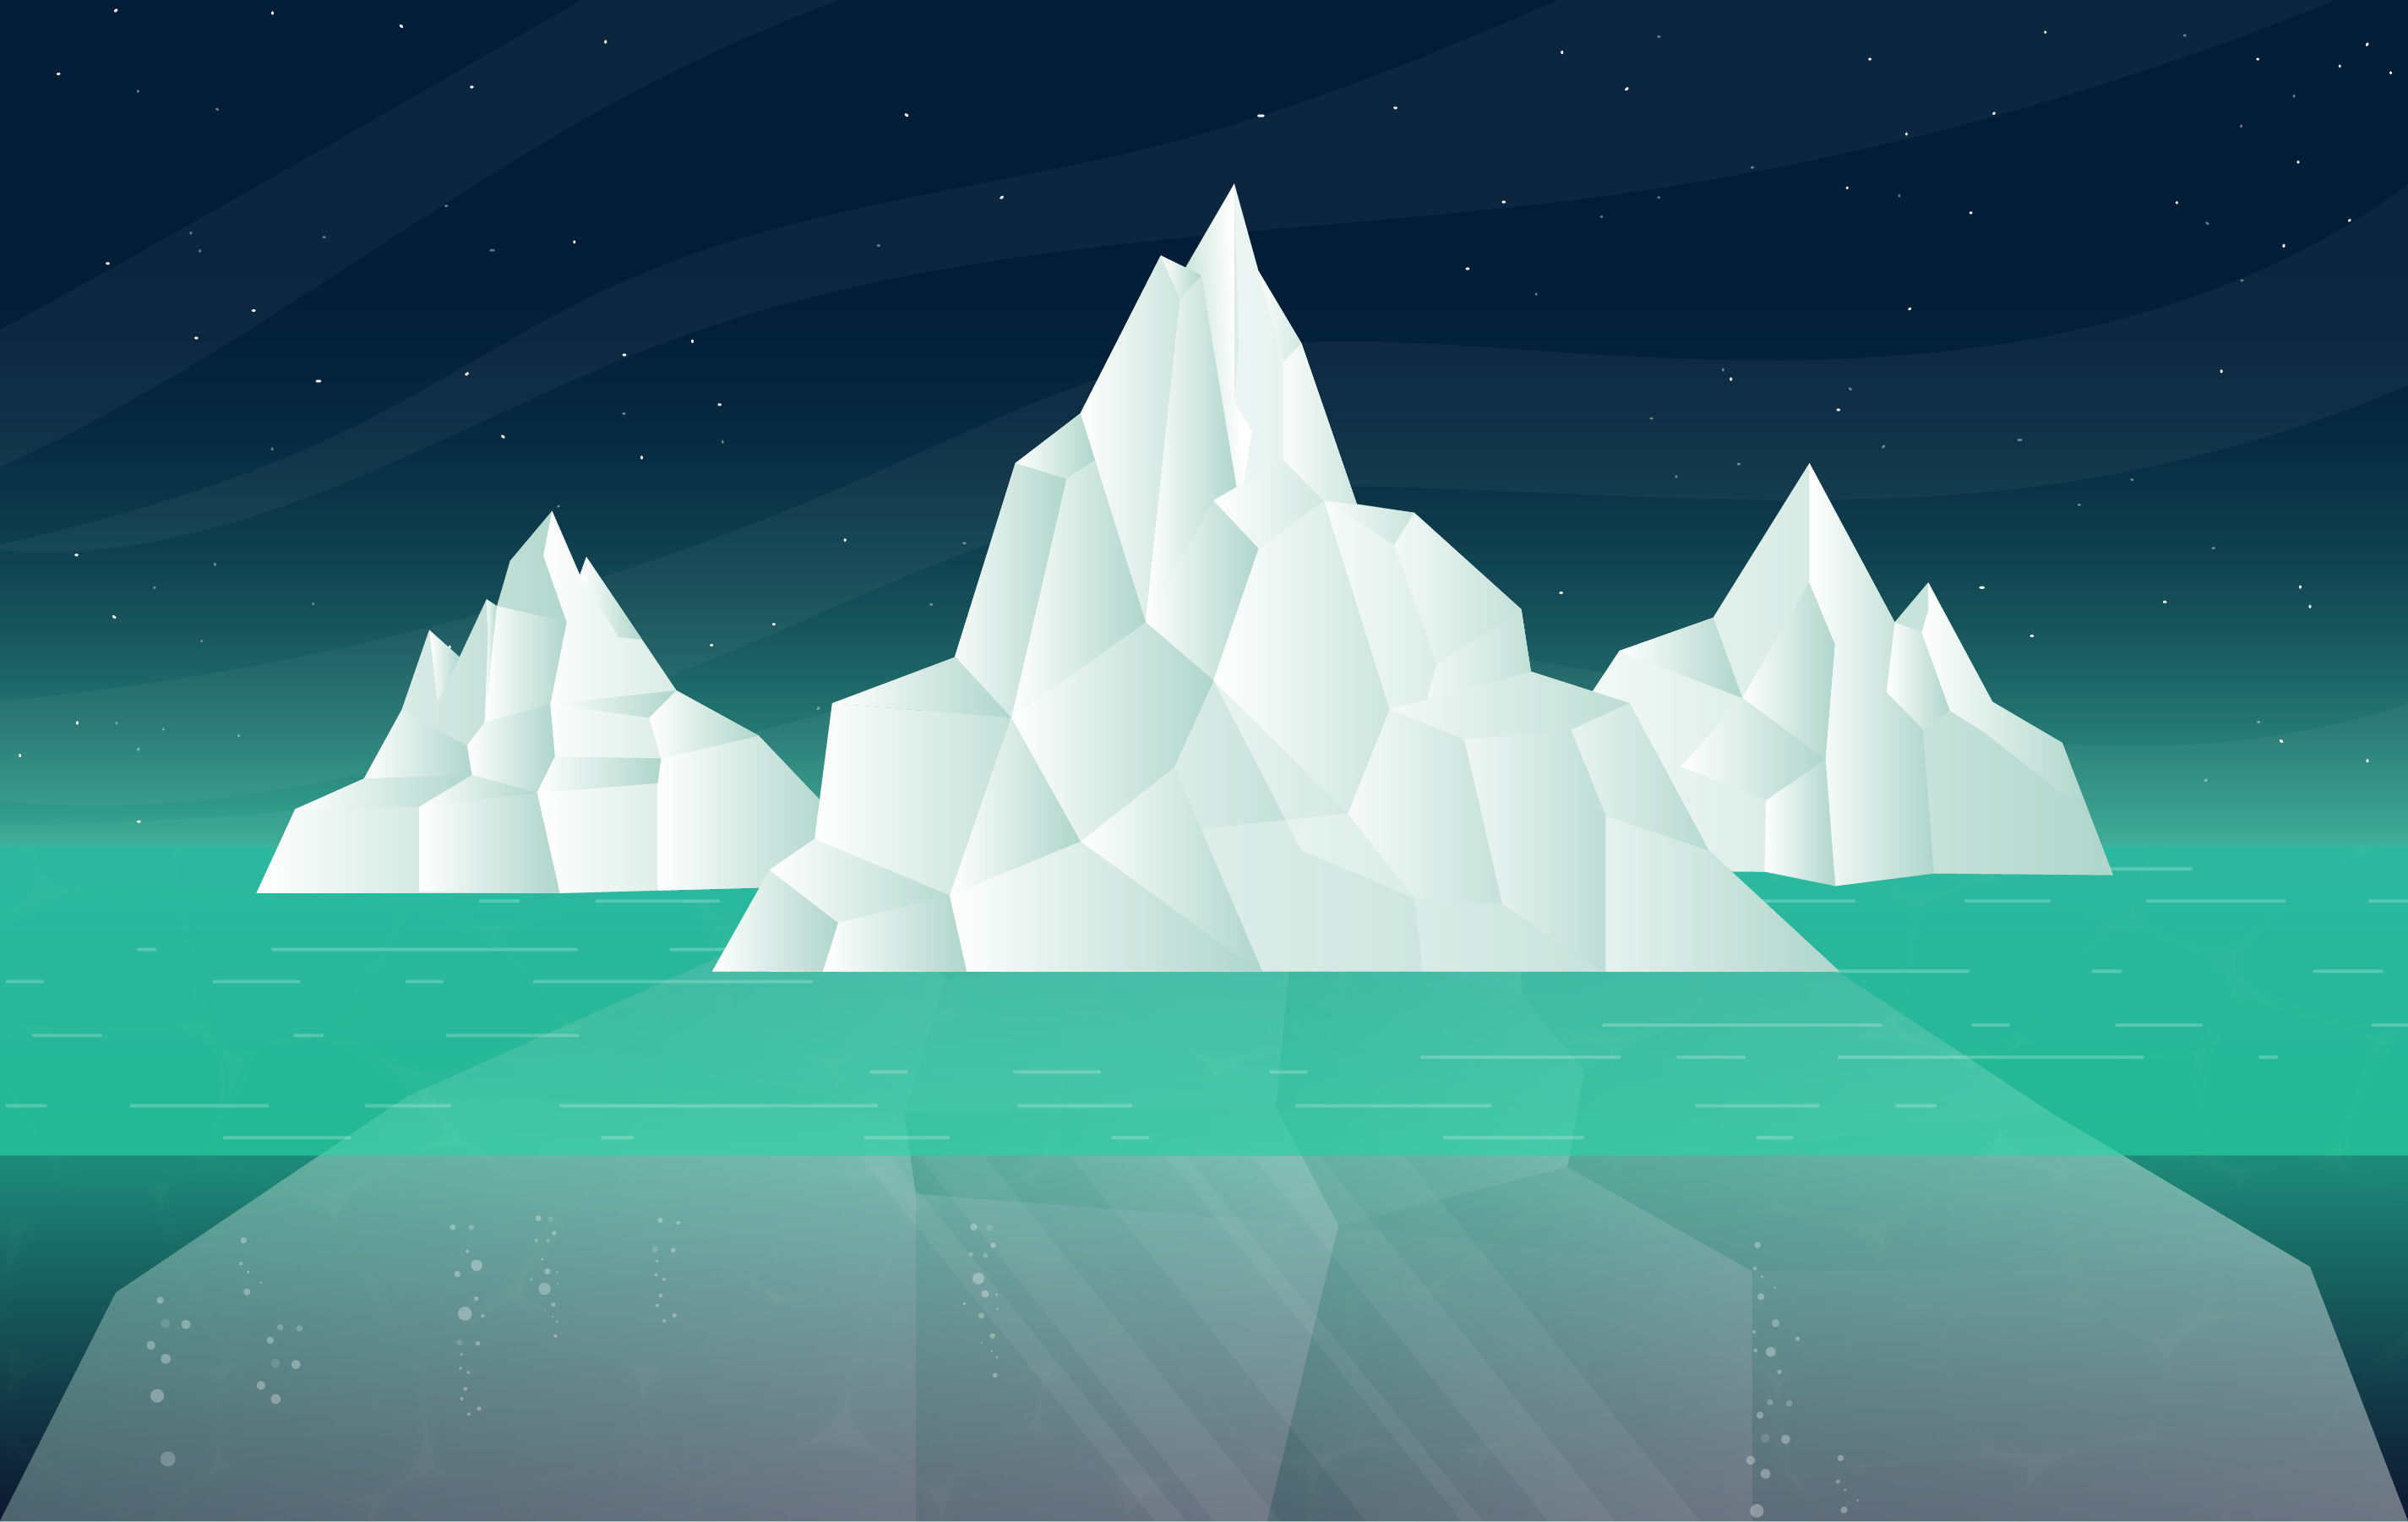 Vector Iceberg Illustration - Download Free Vectors ...